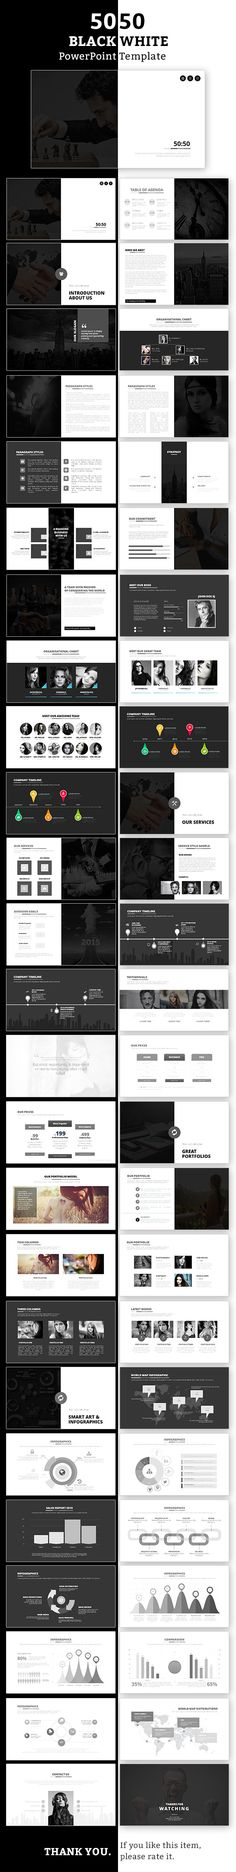 50:50 PowerPoint Design Tempalte #slides Download: http://graphicriver.net/item/5050-powerpoint-template/12948281?ref=ksioks